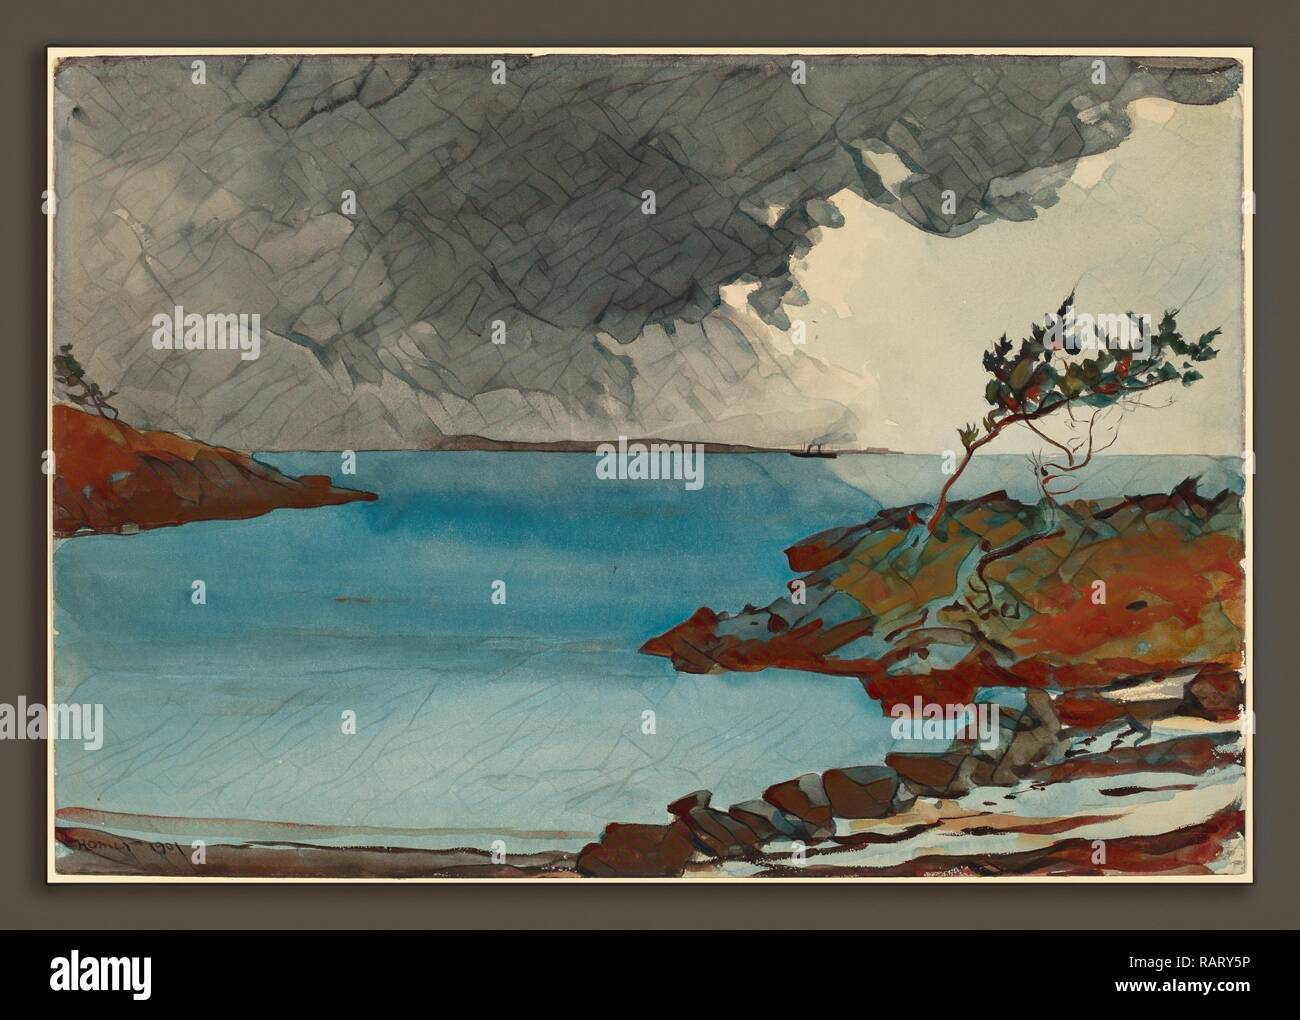 Winslow Homer, The Coming Storm, American, 1836 - 1910, 1901, watercolor over graphite. Reimagined by Gibon. Classic reimagined - Stock Image